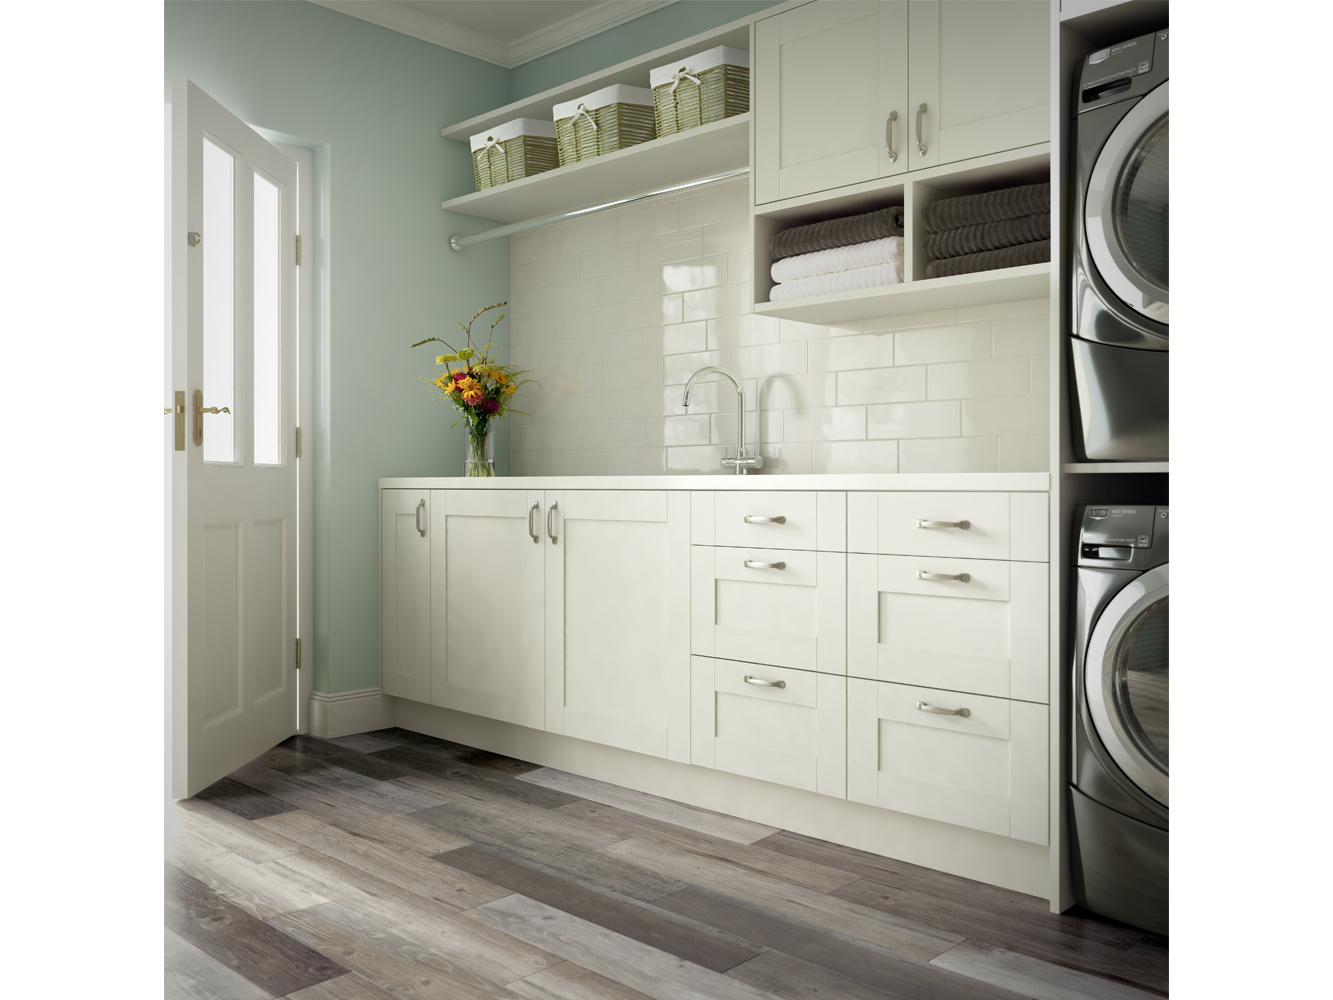 pix-us-cg-laundry-room